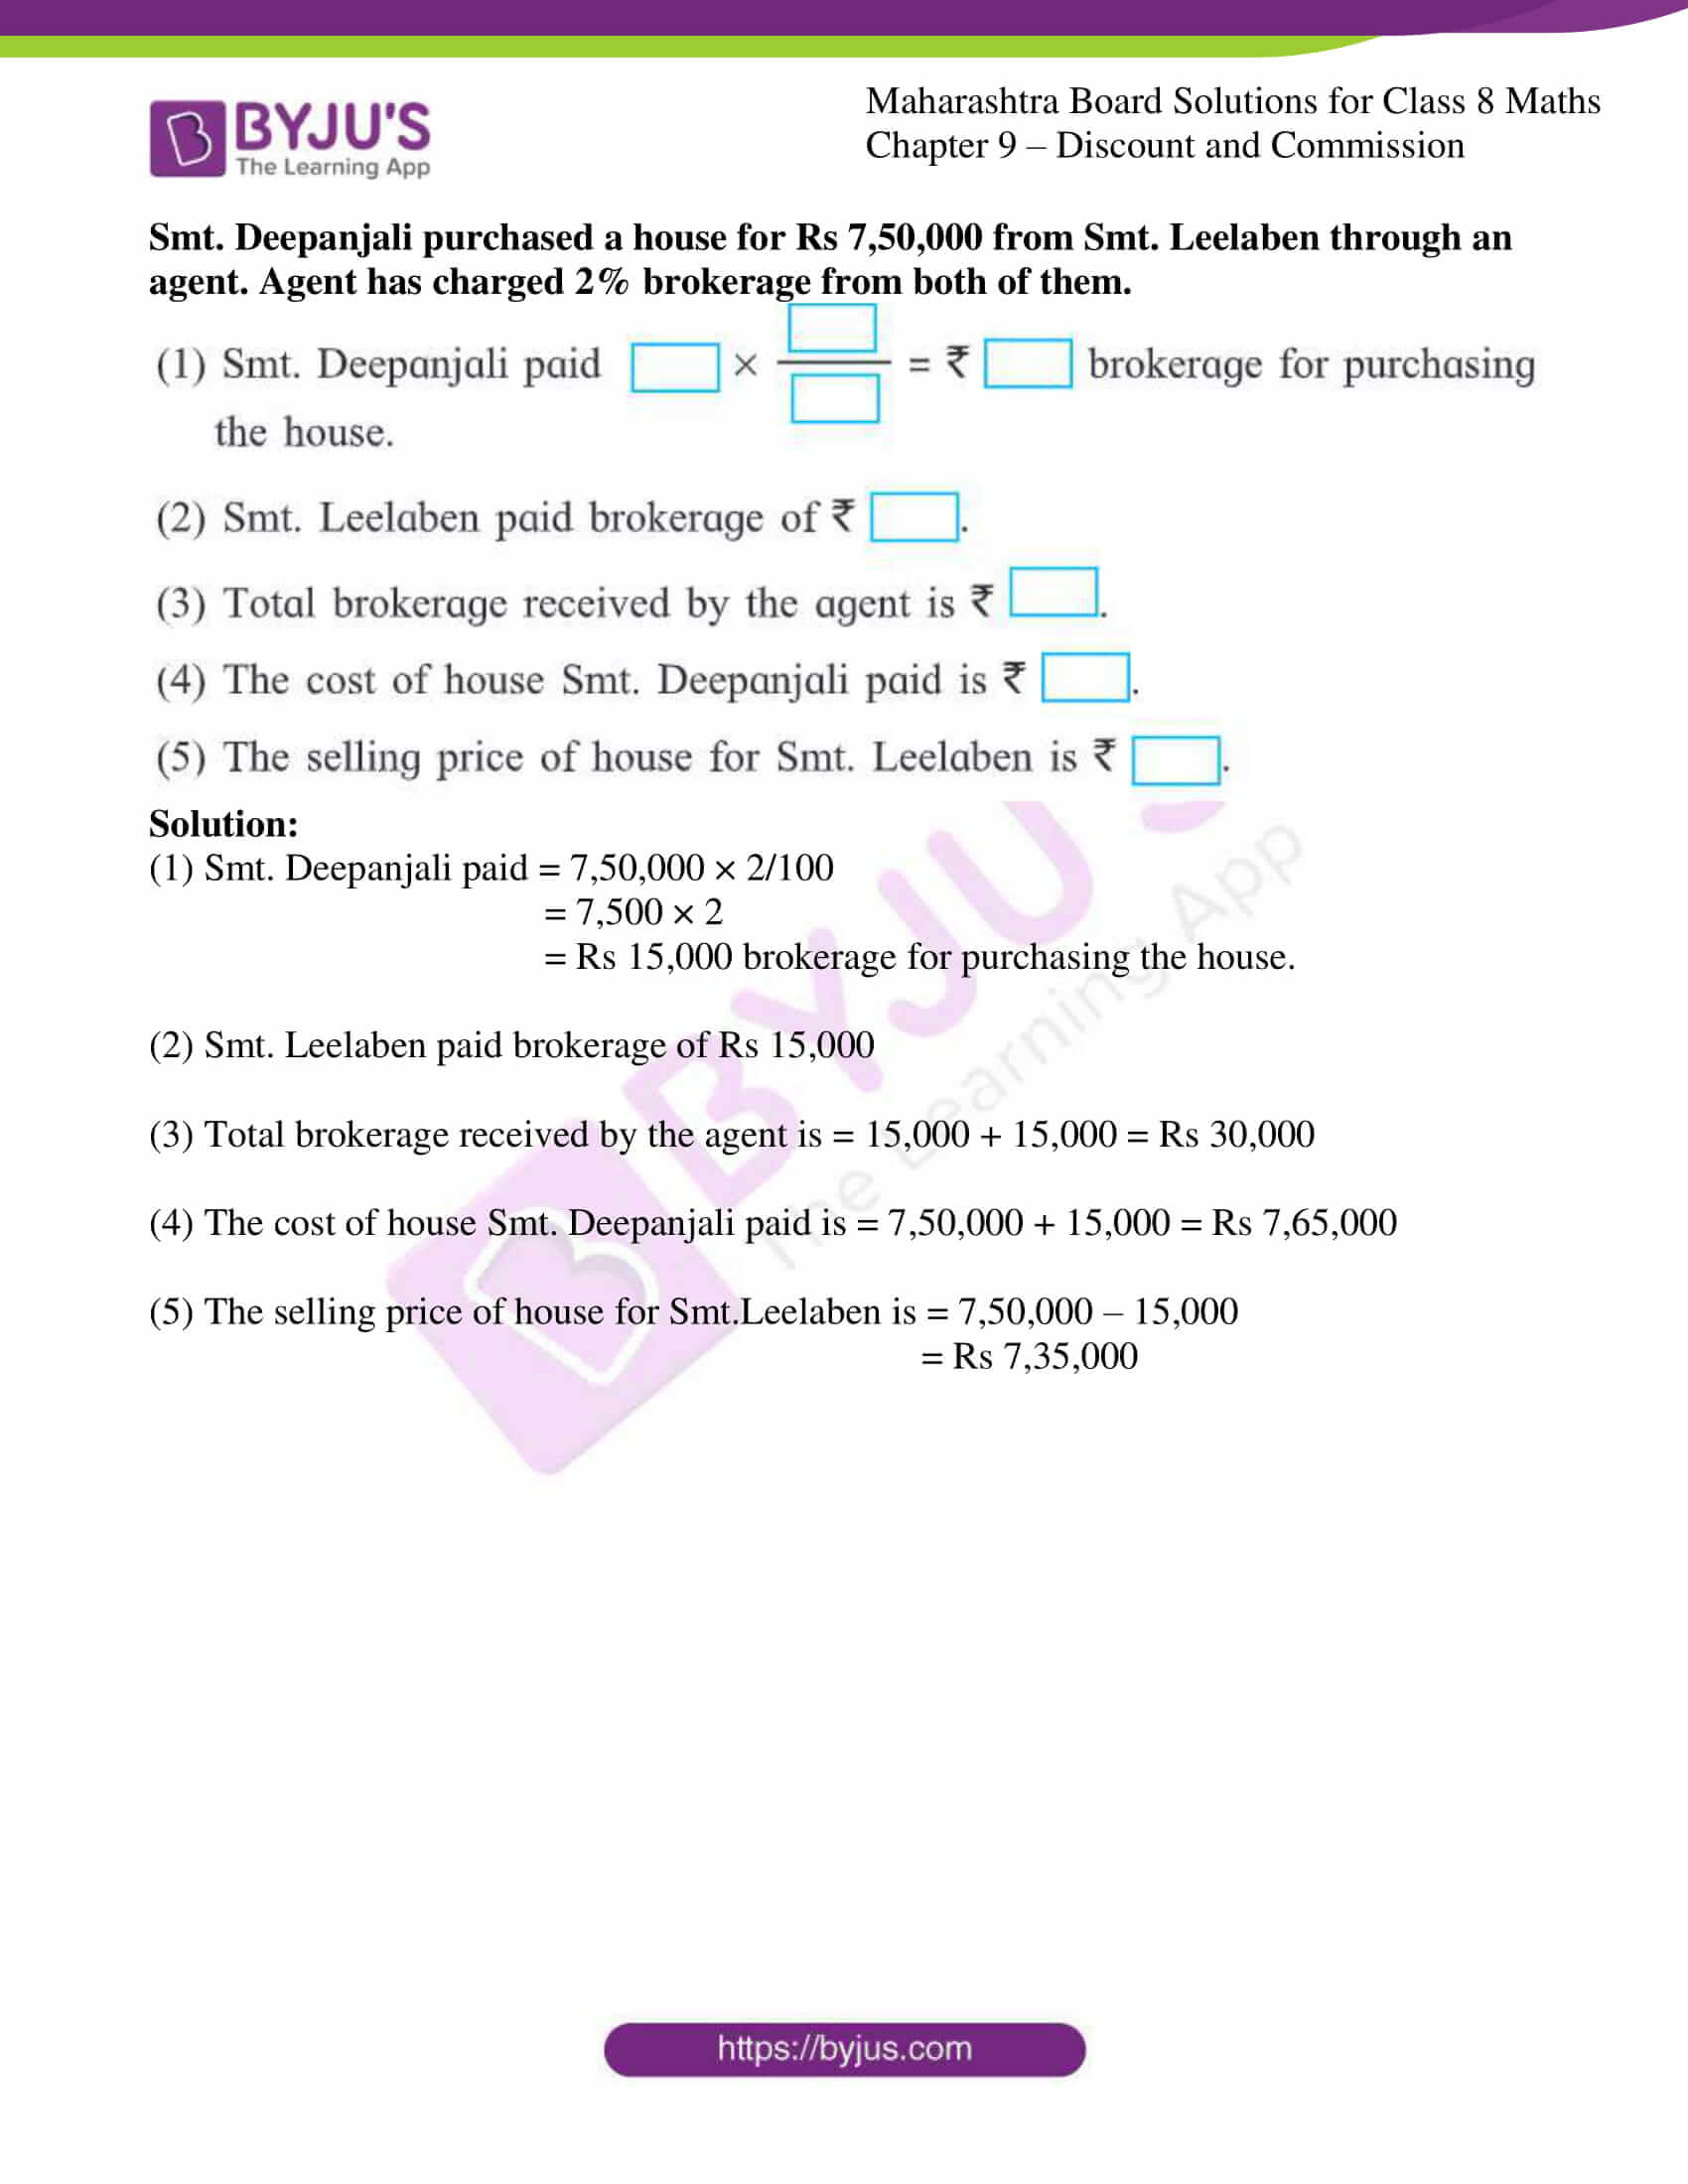 msbshse sol for class 8 maths chapter 9 7